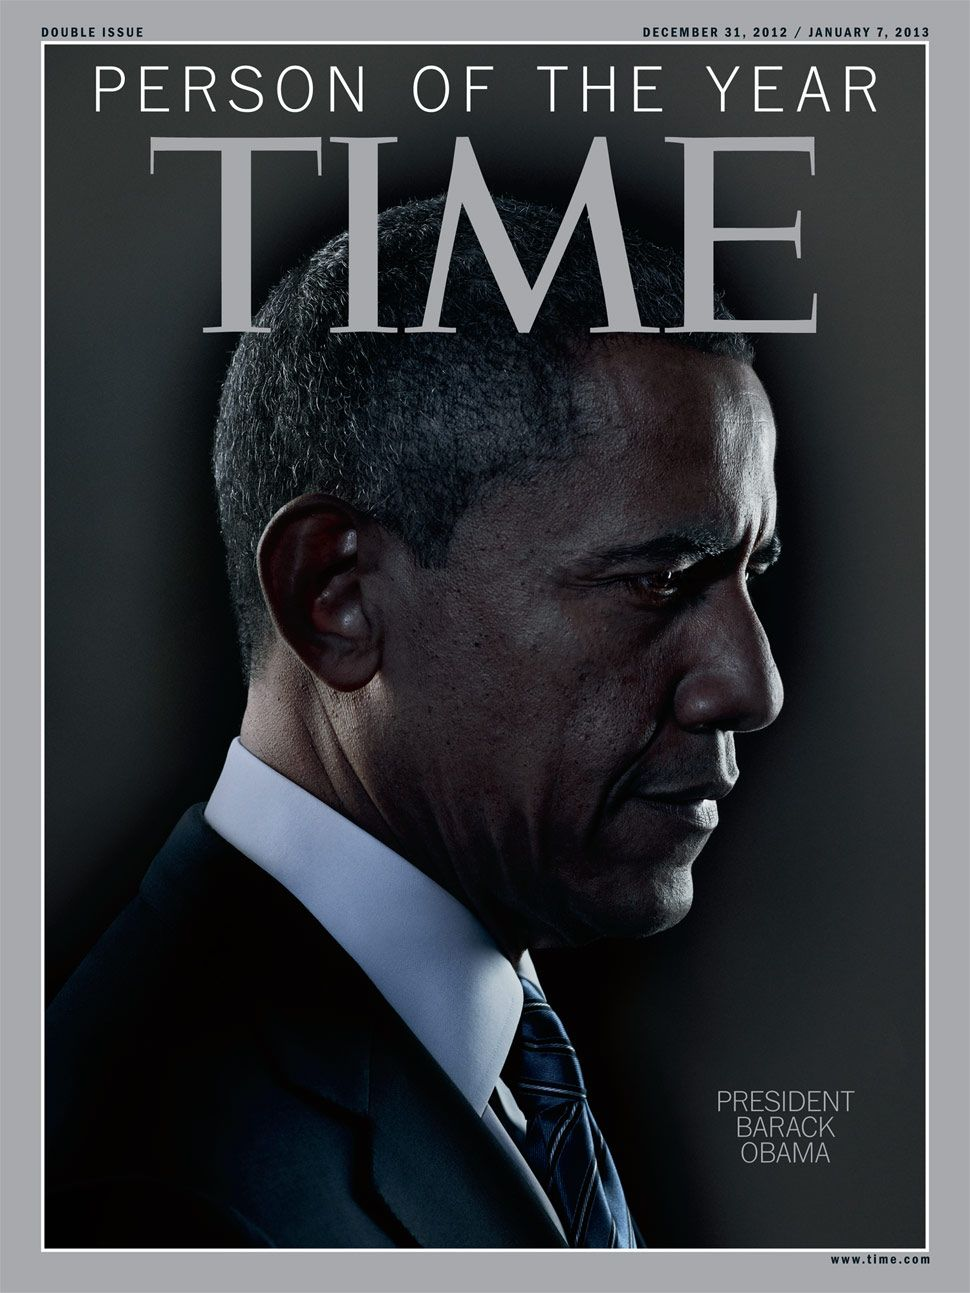 December 31, 2012: TIME names U.S. President Barack Obama its Person of the Year for the second time. Read the cover story: http://ti.me/VjuJUS